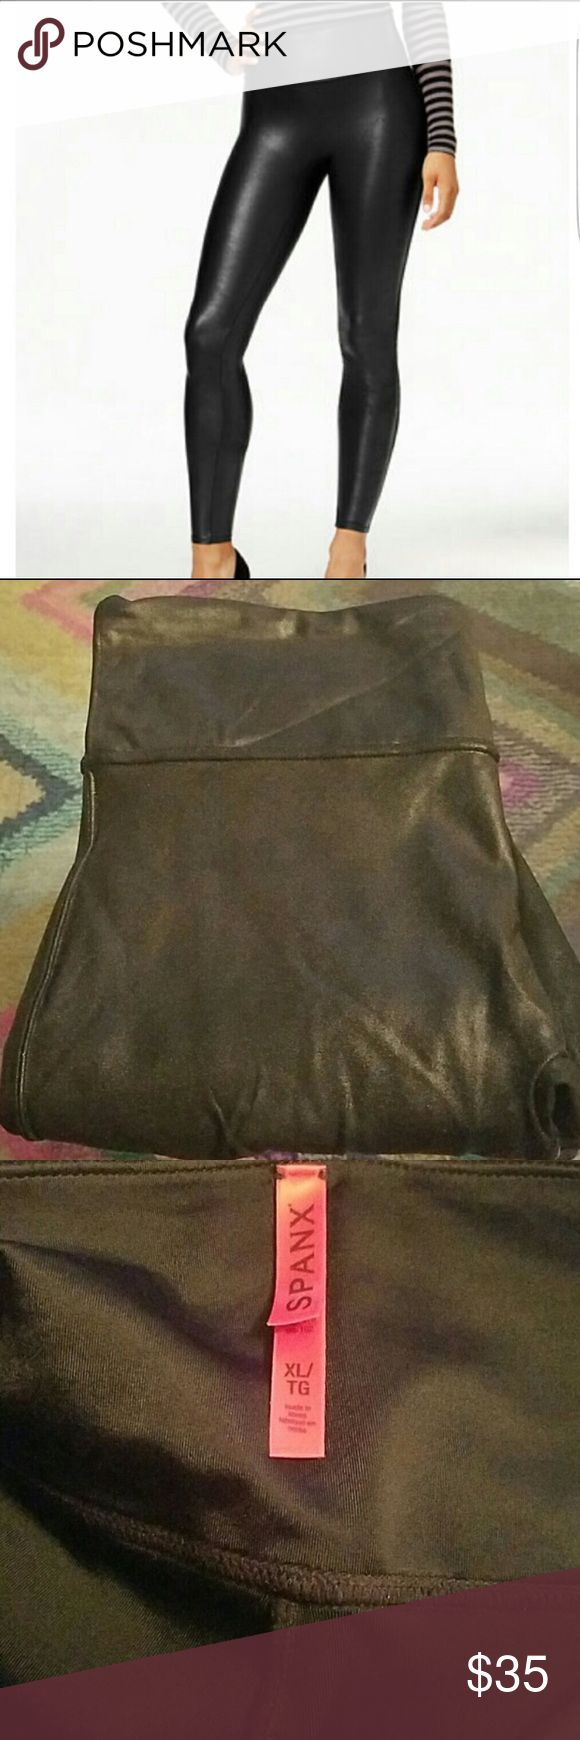 Spanx Faux Leather Leggings Super cute! Slimming effect. Gently worn, great condition! SPANX Pants Leggings